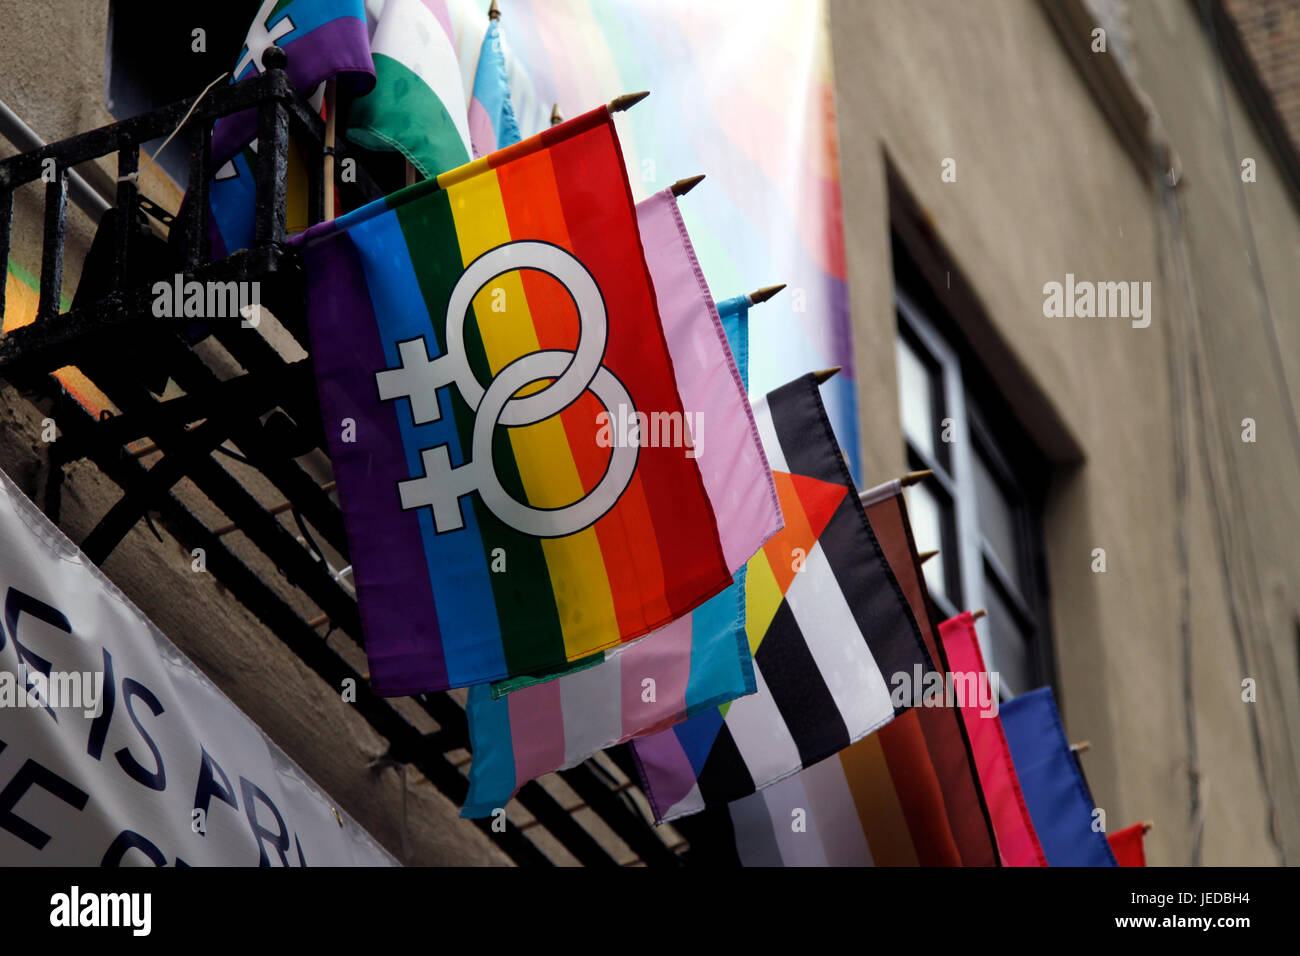 New York, USA. 23rd June, 2017. Flags adorn The Stonewall Inn in New York City's Greenwich Village where the - Stock Image